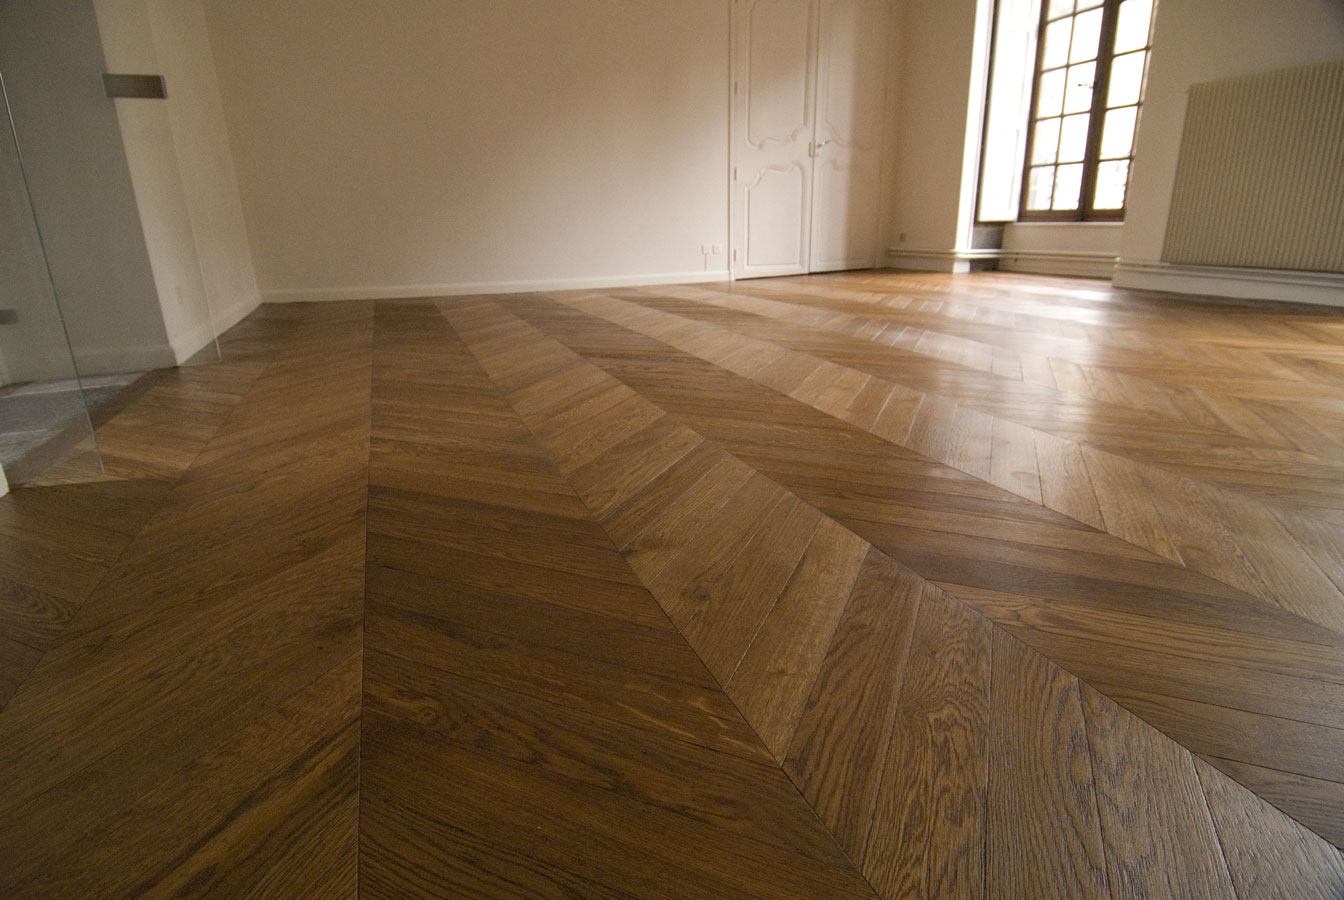 vue g n rale du parquet point de hongrie en ch ne massif parquet chevron dans un bel. Black Bedroom Furniture Sets. Home Design Ideas